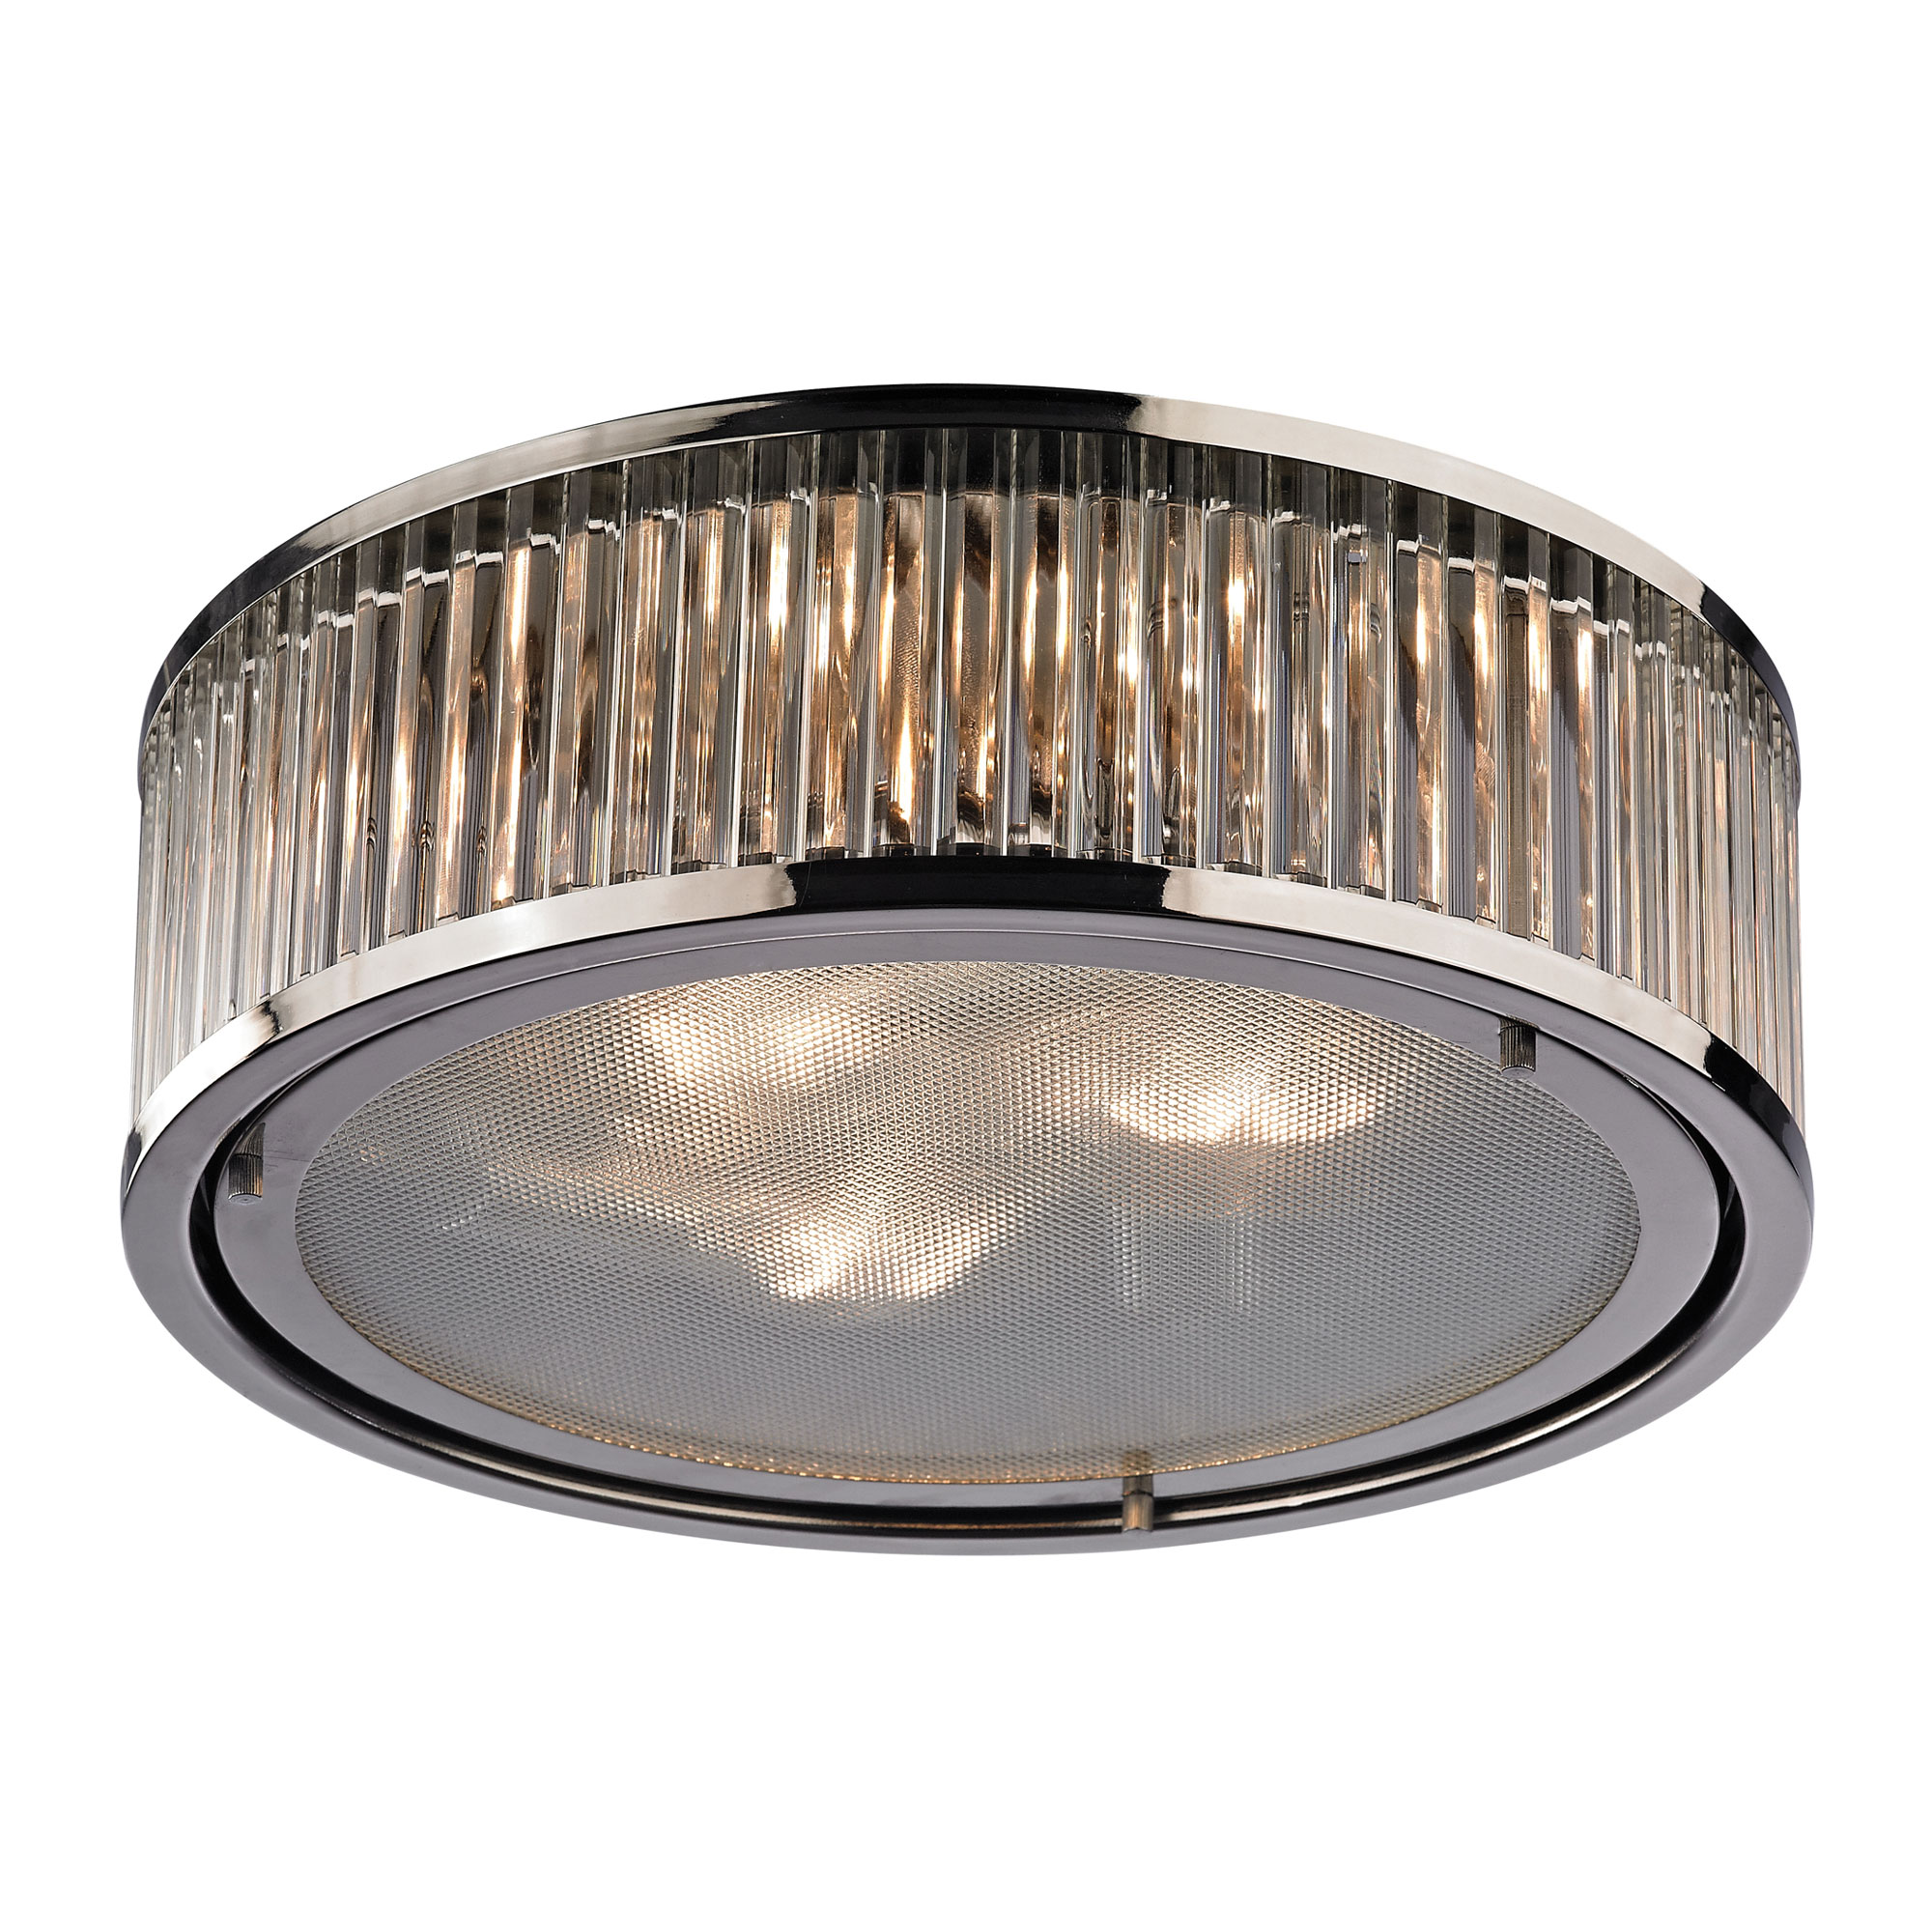 sc 1 st  Lightology & Linden Flush Mount by Elk Lighting | 46103/3